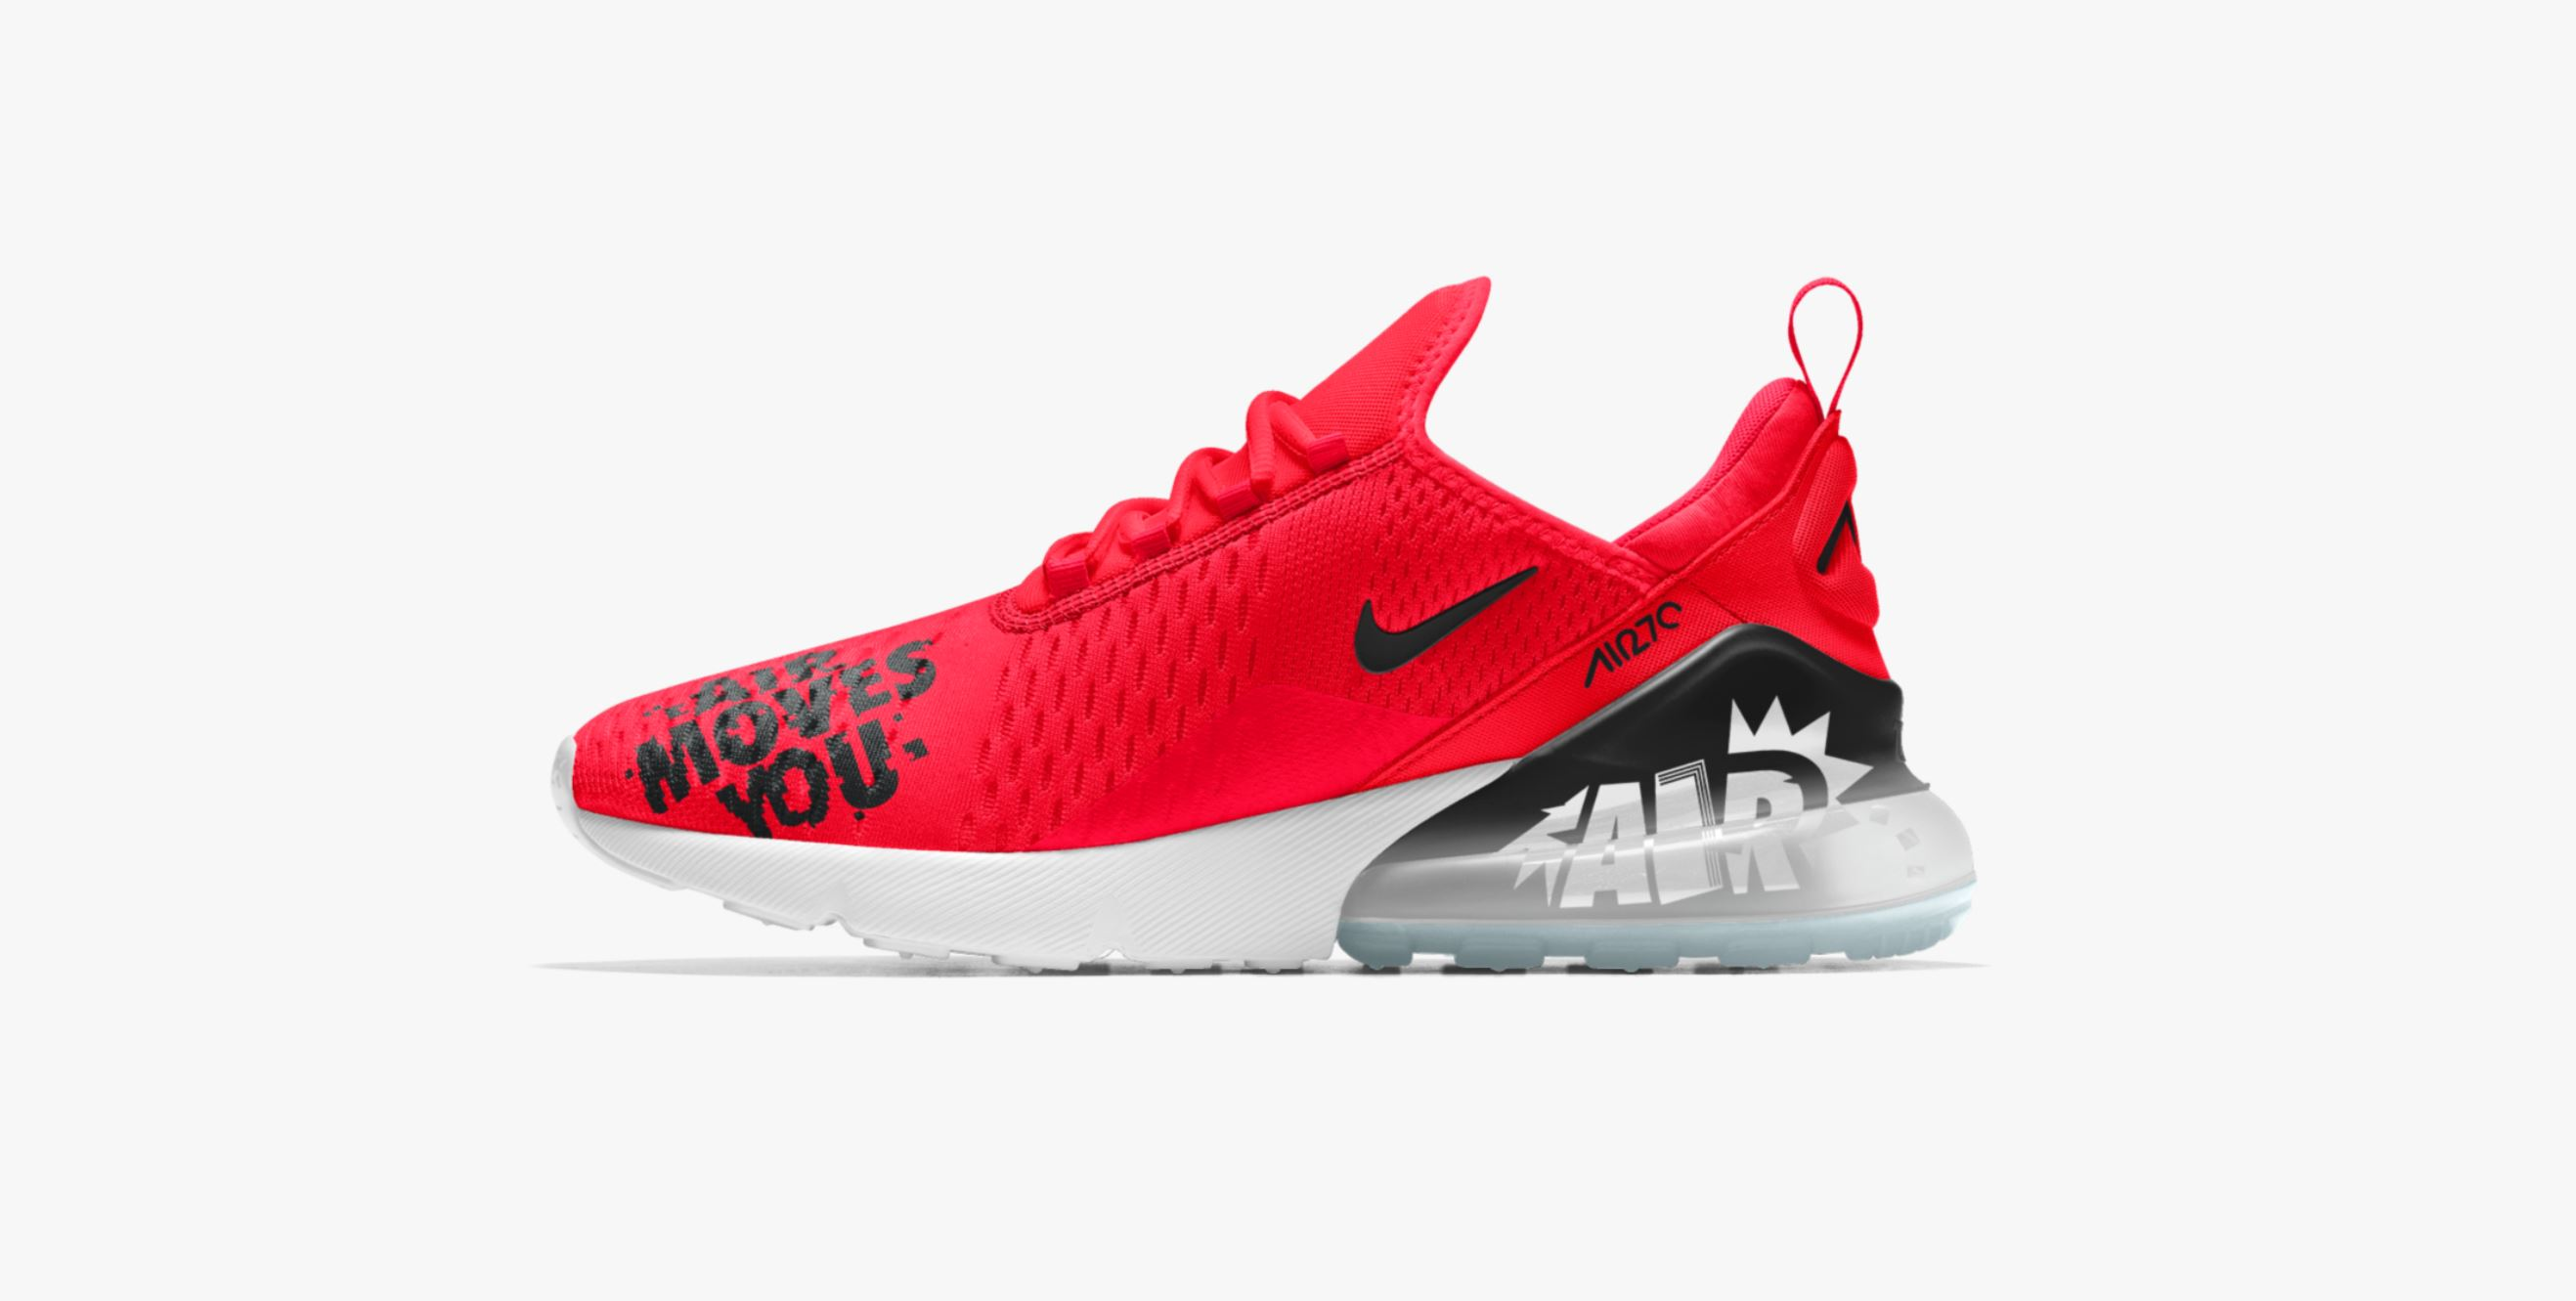 size 40 f9e2d ccc6f The Nike Air Max 270 Has Hit NikeiD for Customization ...